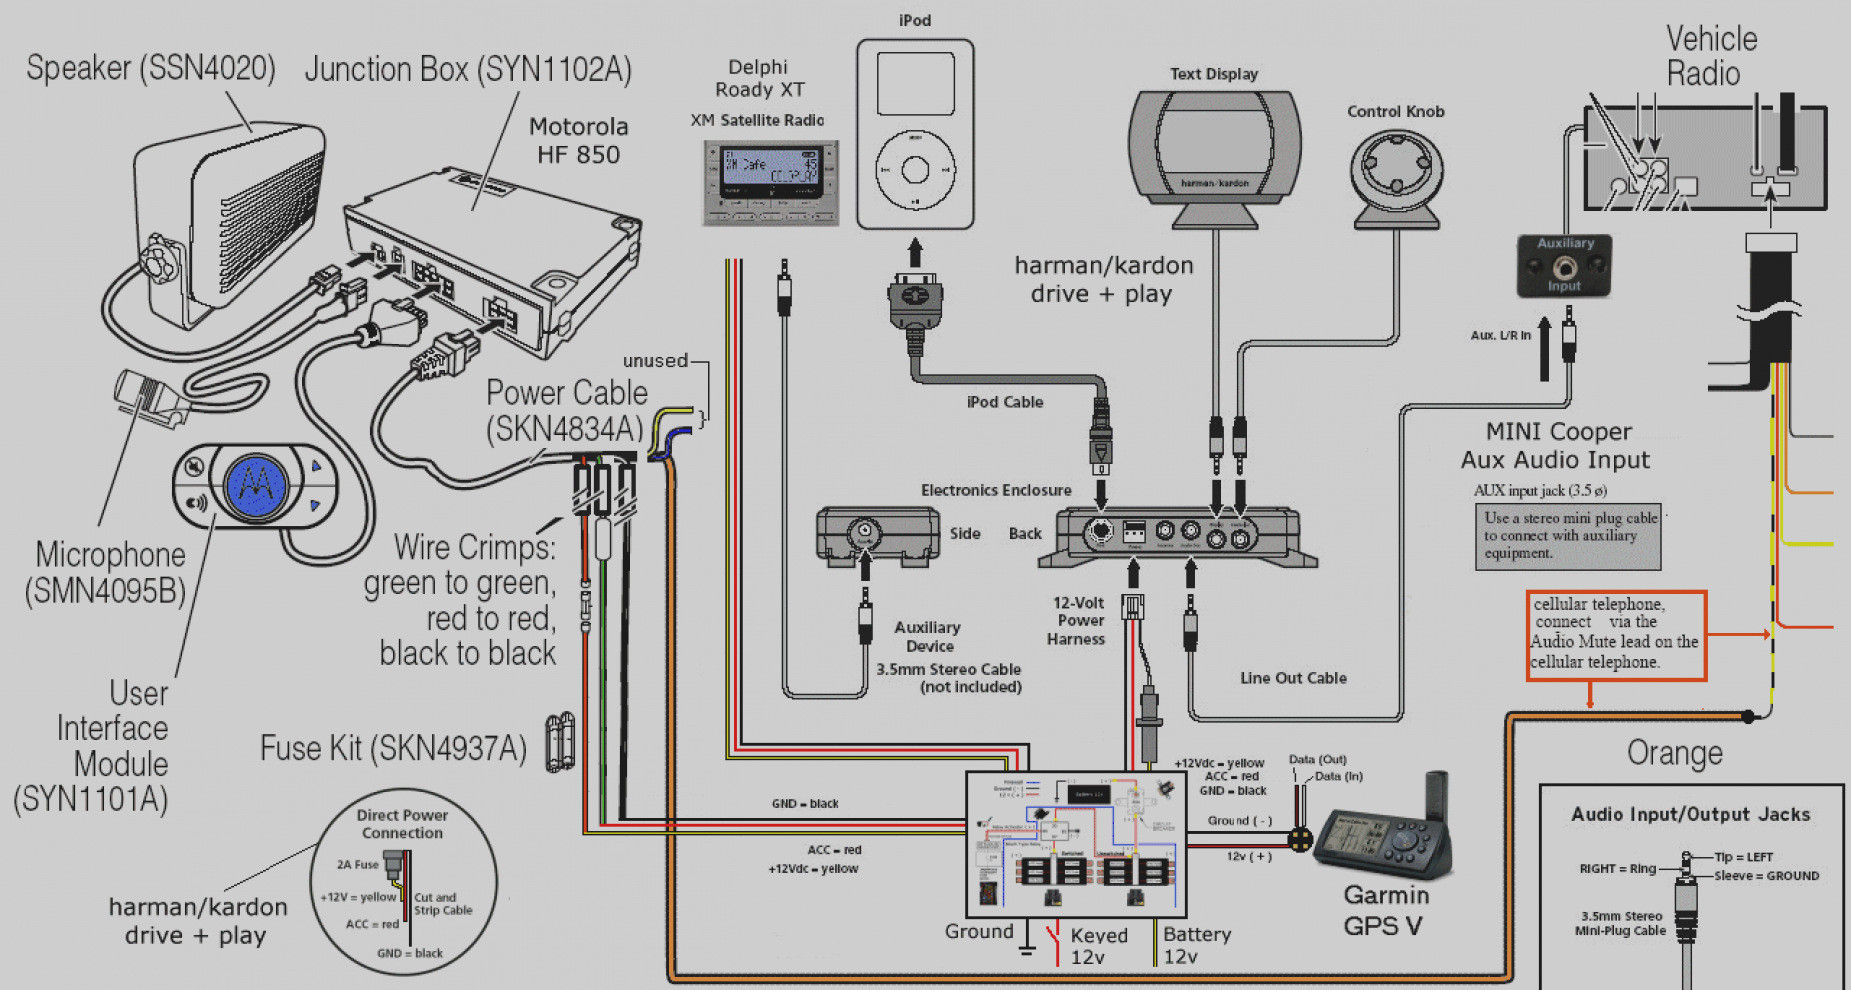 garmin usb power cable wiring diagram 6 pin ac cdi box 498 library